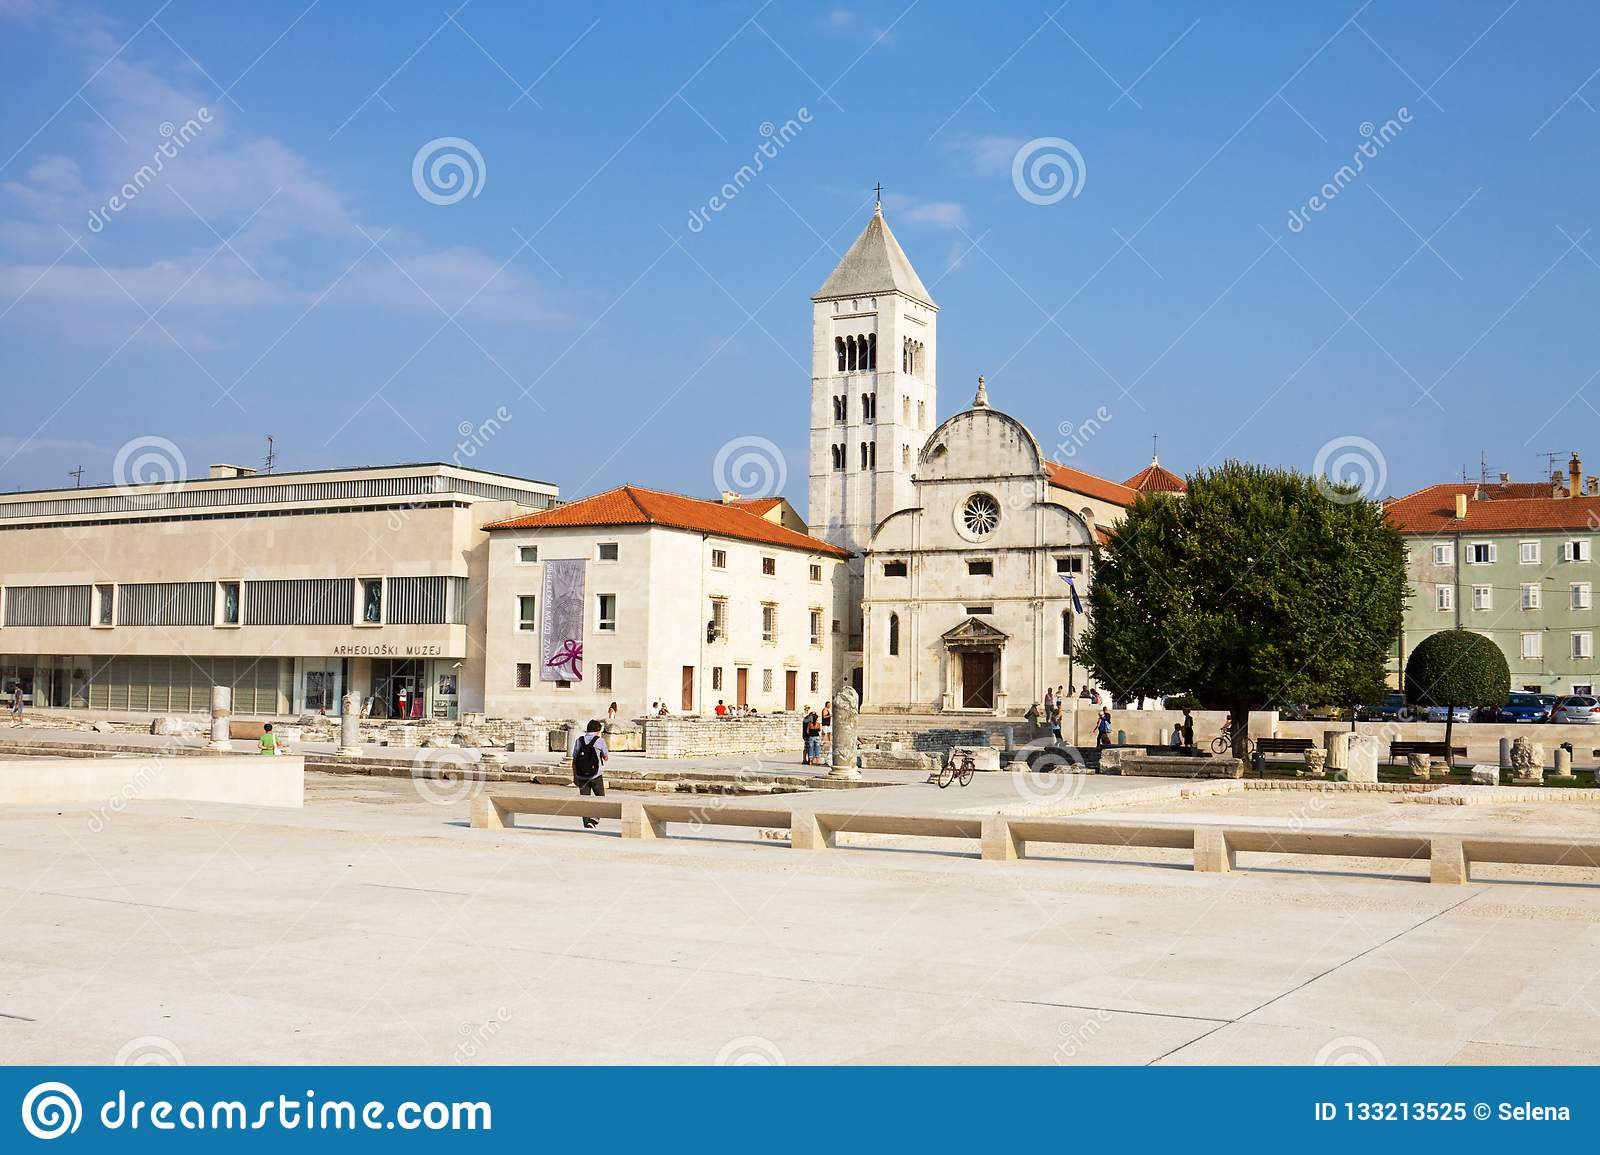 The Archaeological museum, St. Mary`s Church and other buildings